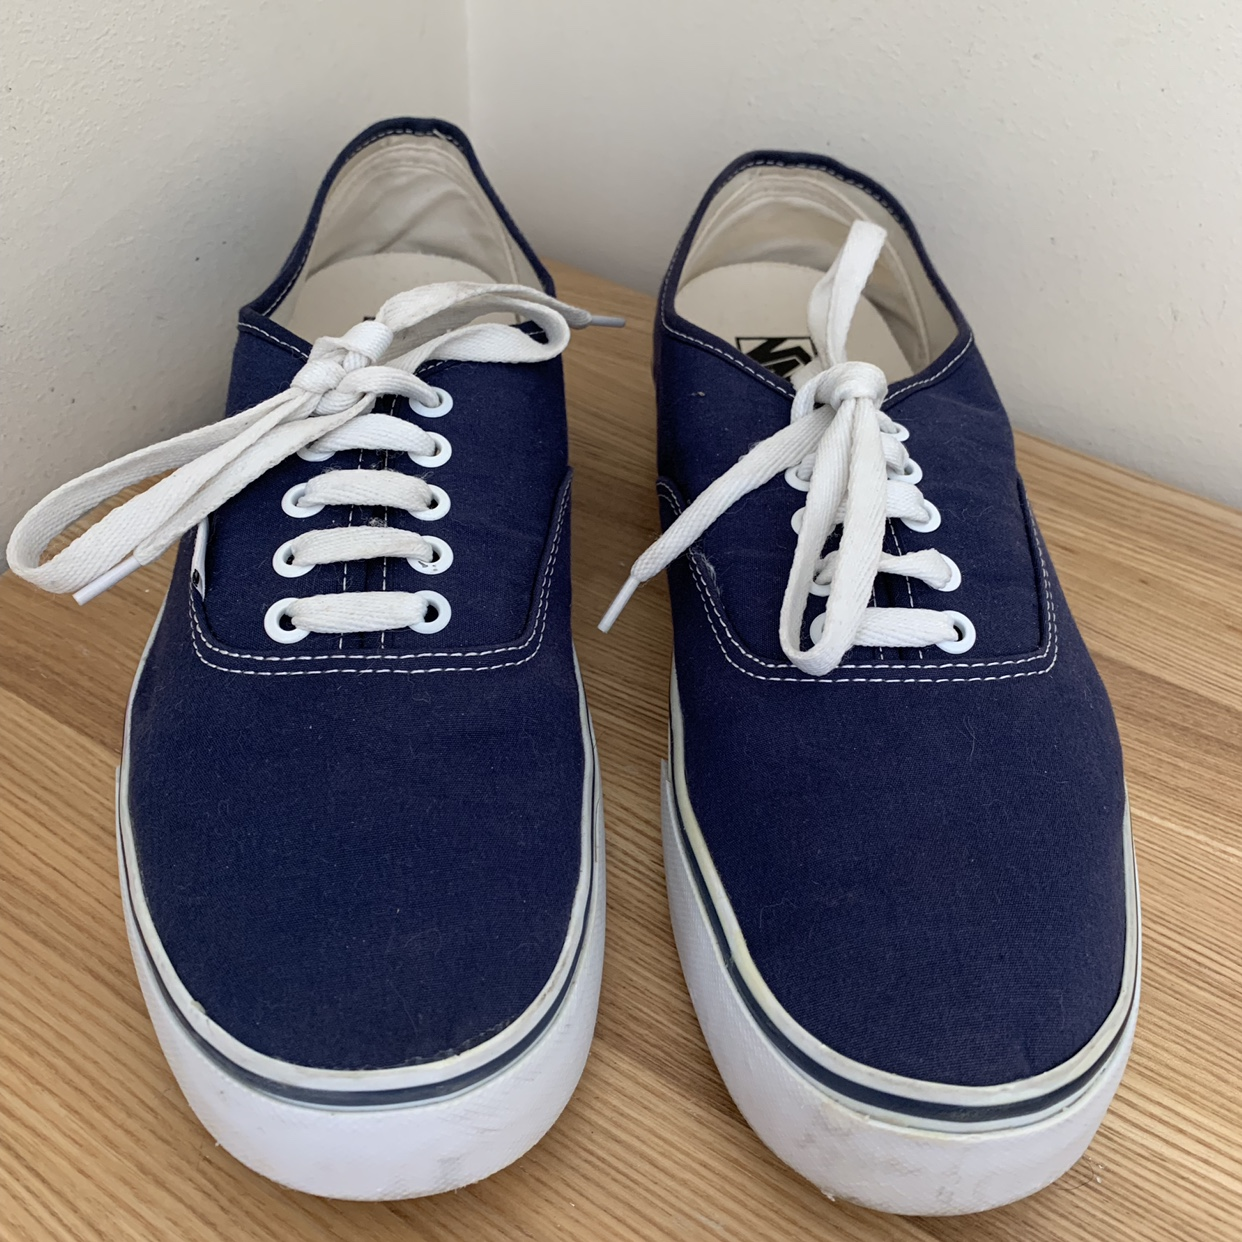 Mens blue Vans Off the Wall shoes, in